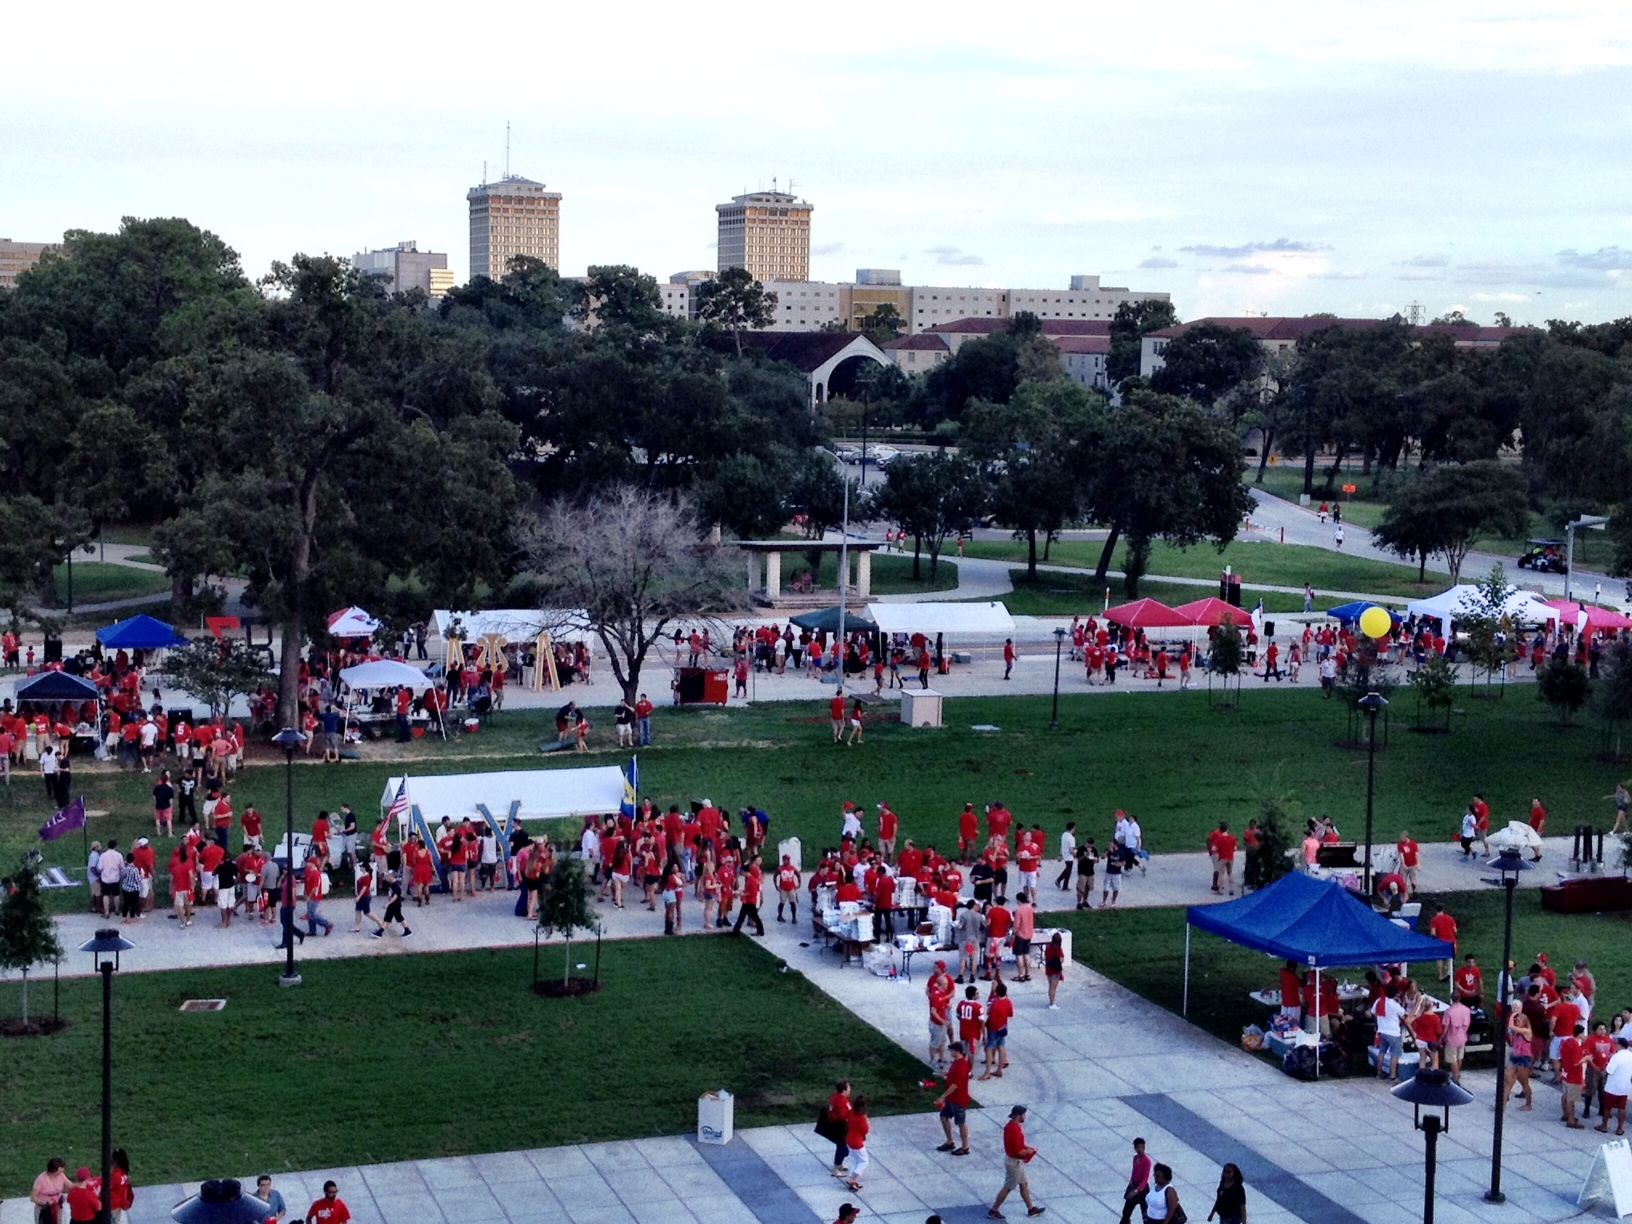 Houston Cougars fans tailgating at Shasta Square on football gameday